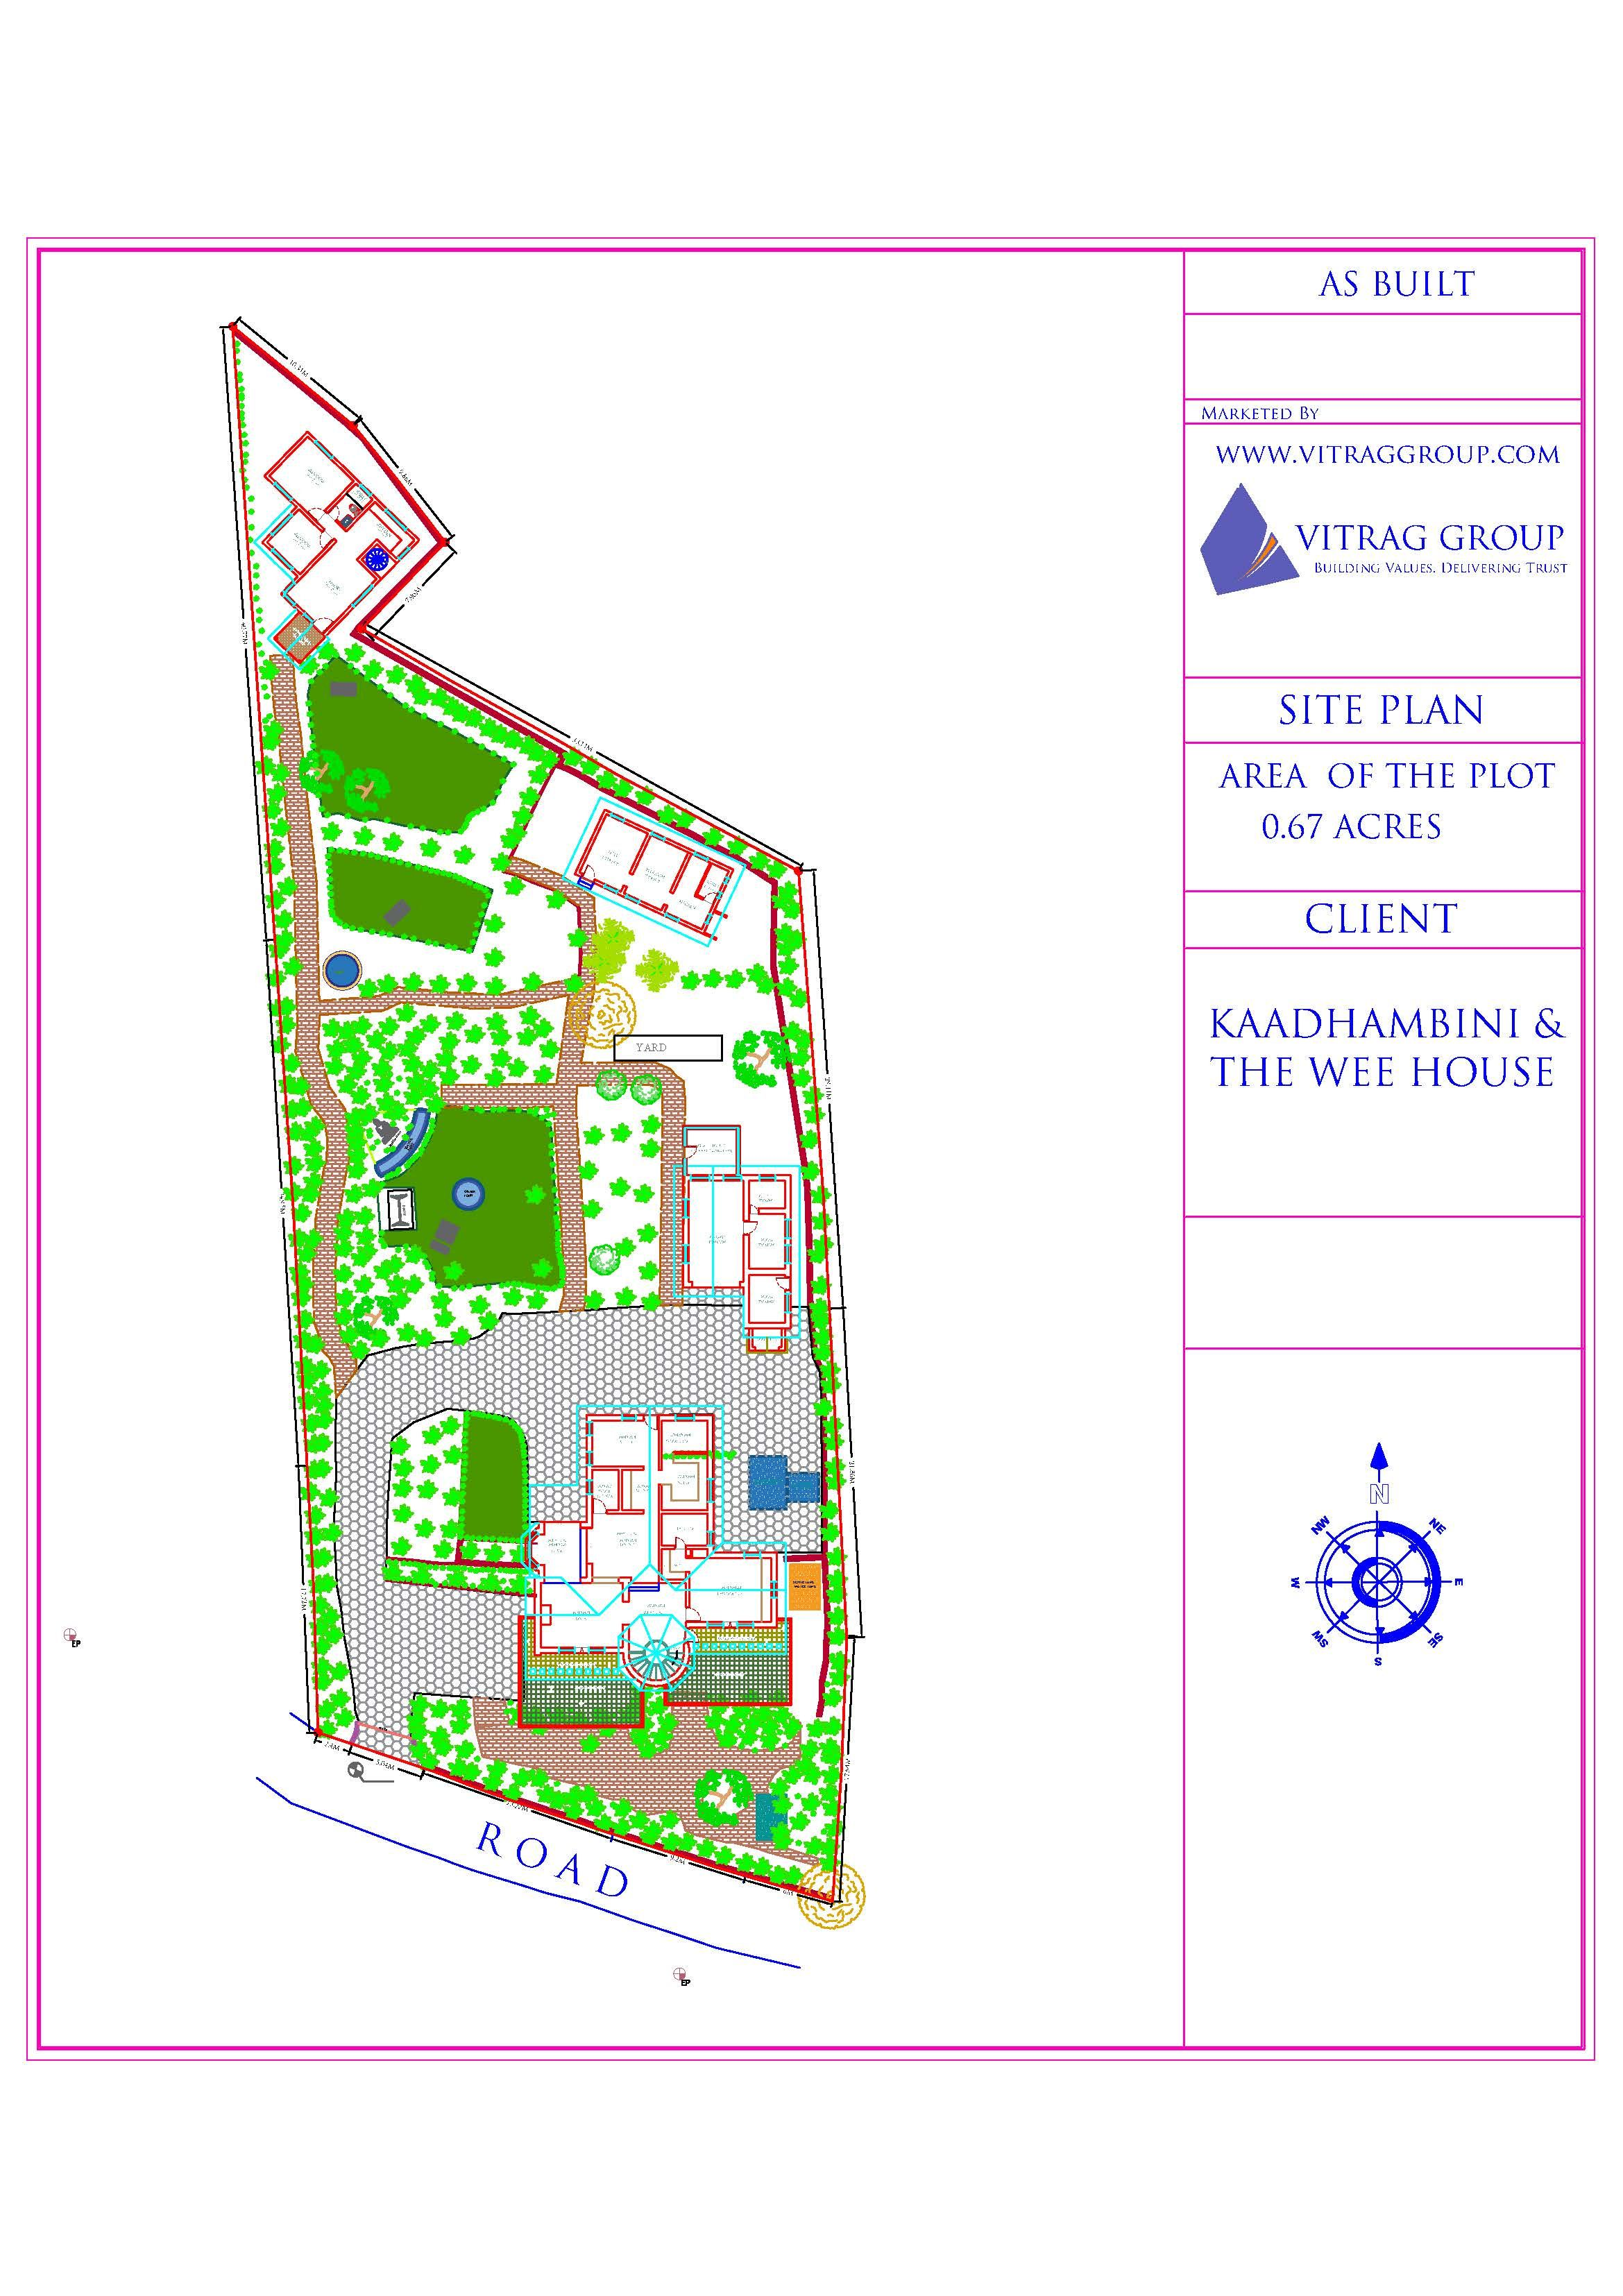 SITE PLAN WITH BUILDINGS AND TREES